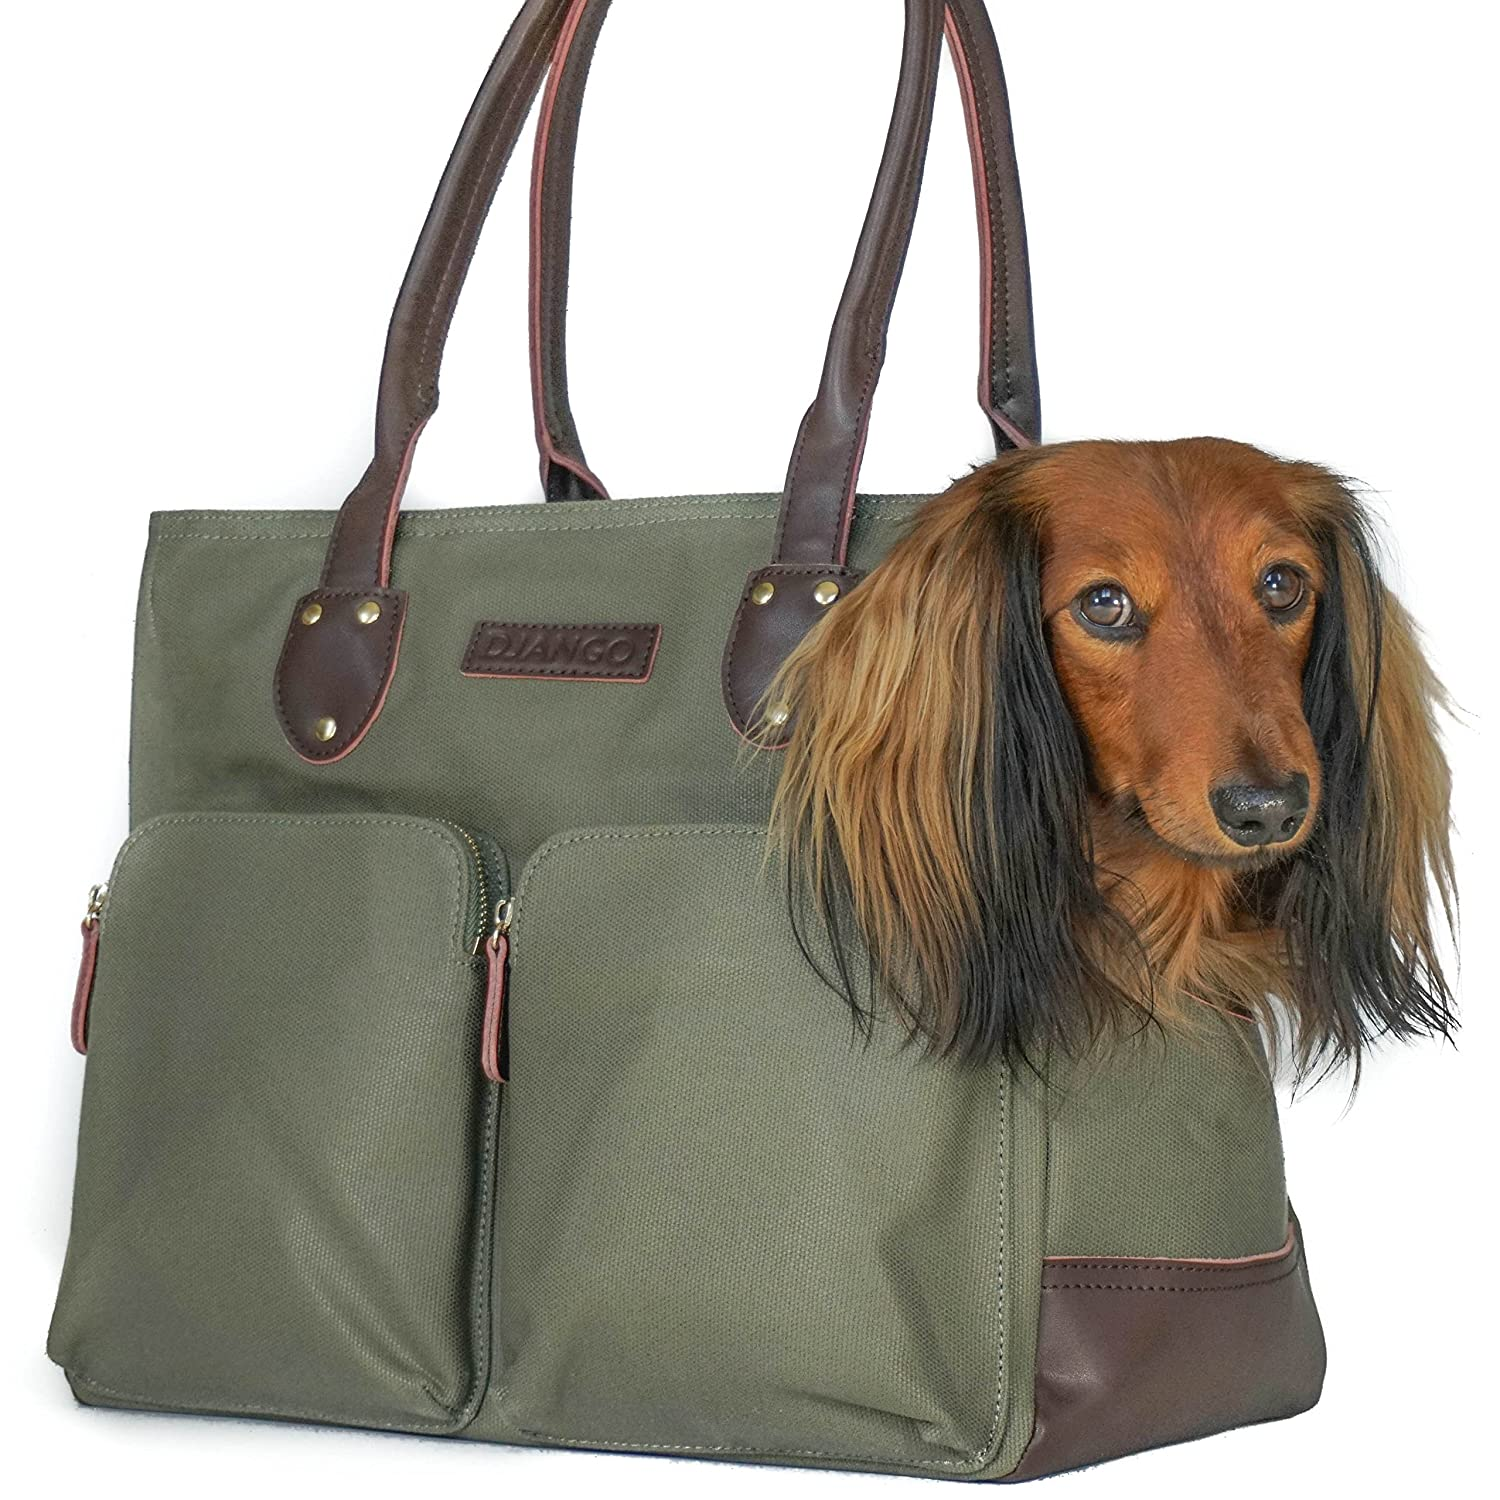 The DJANGO Dog Carry Bag travel product recommended by Stephanie Wiggins on Lifney.